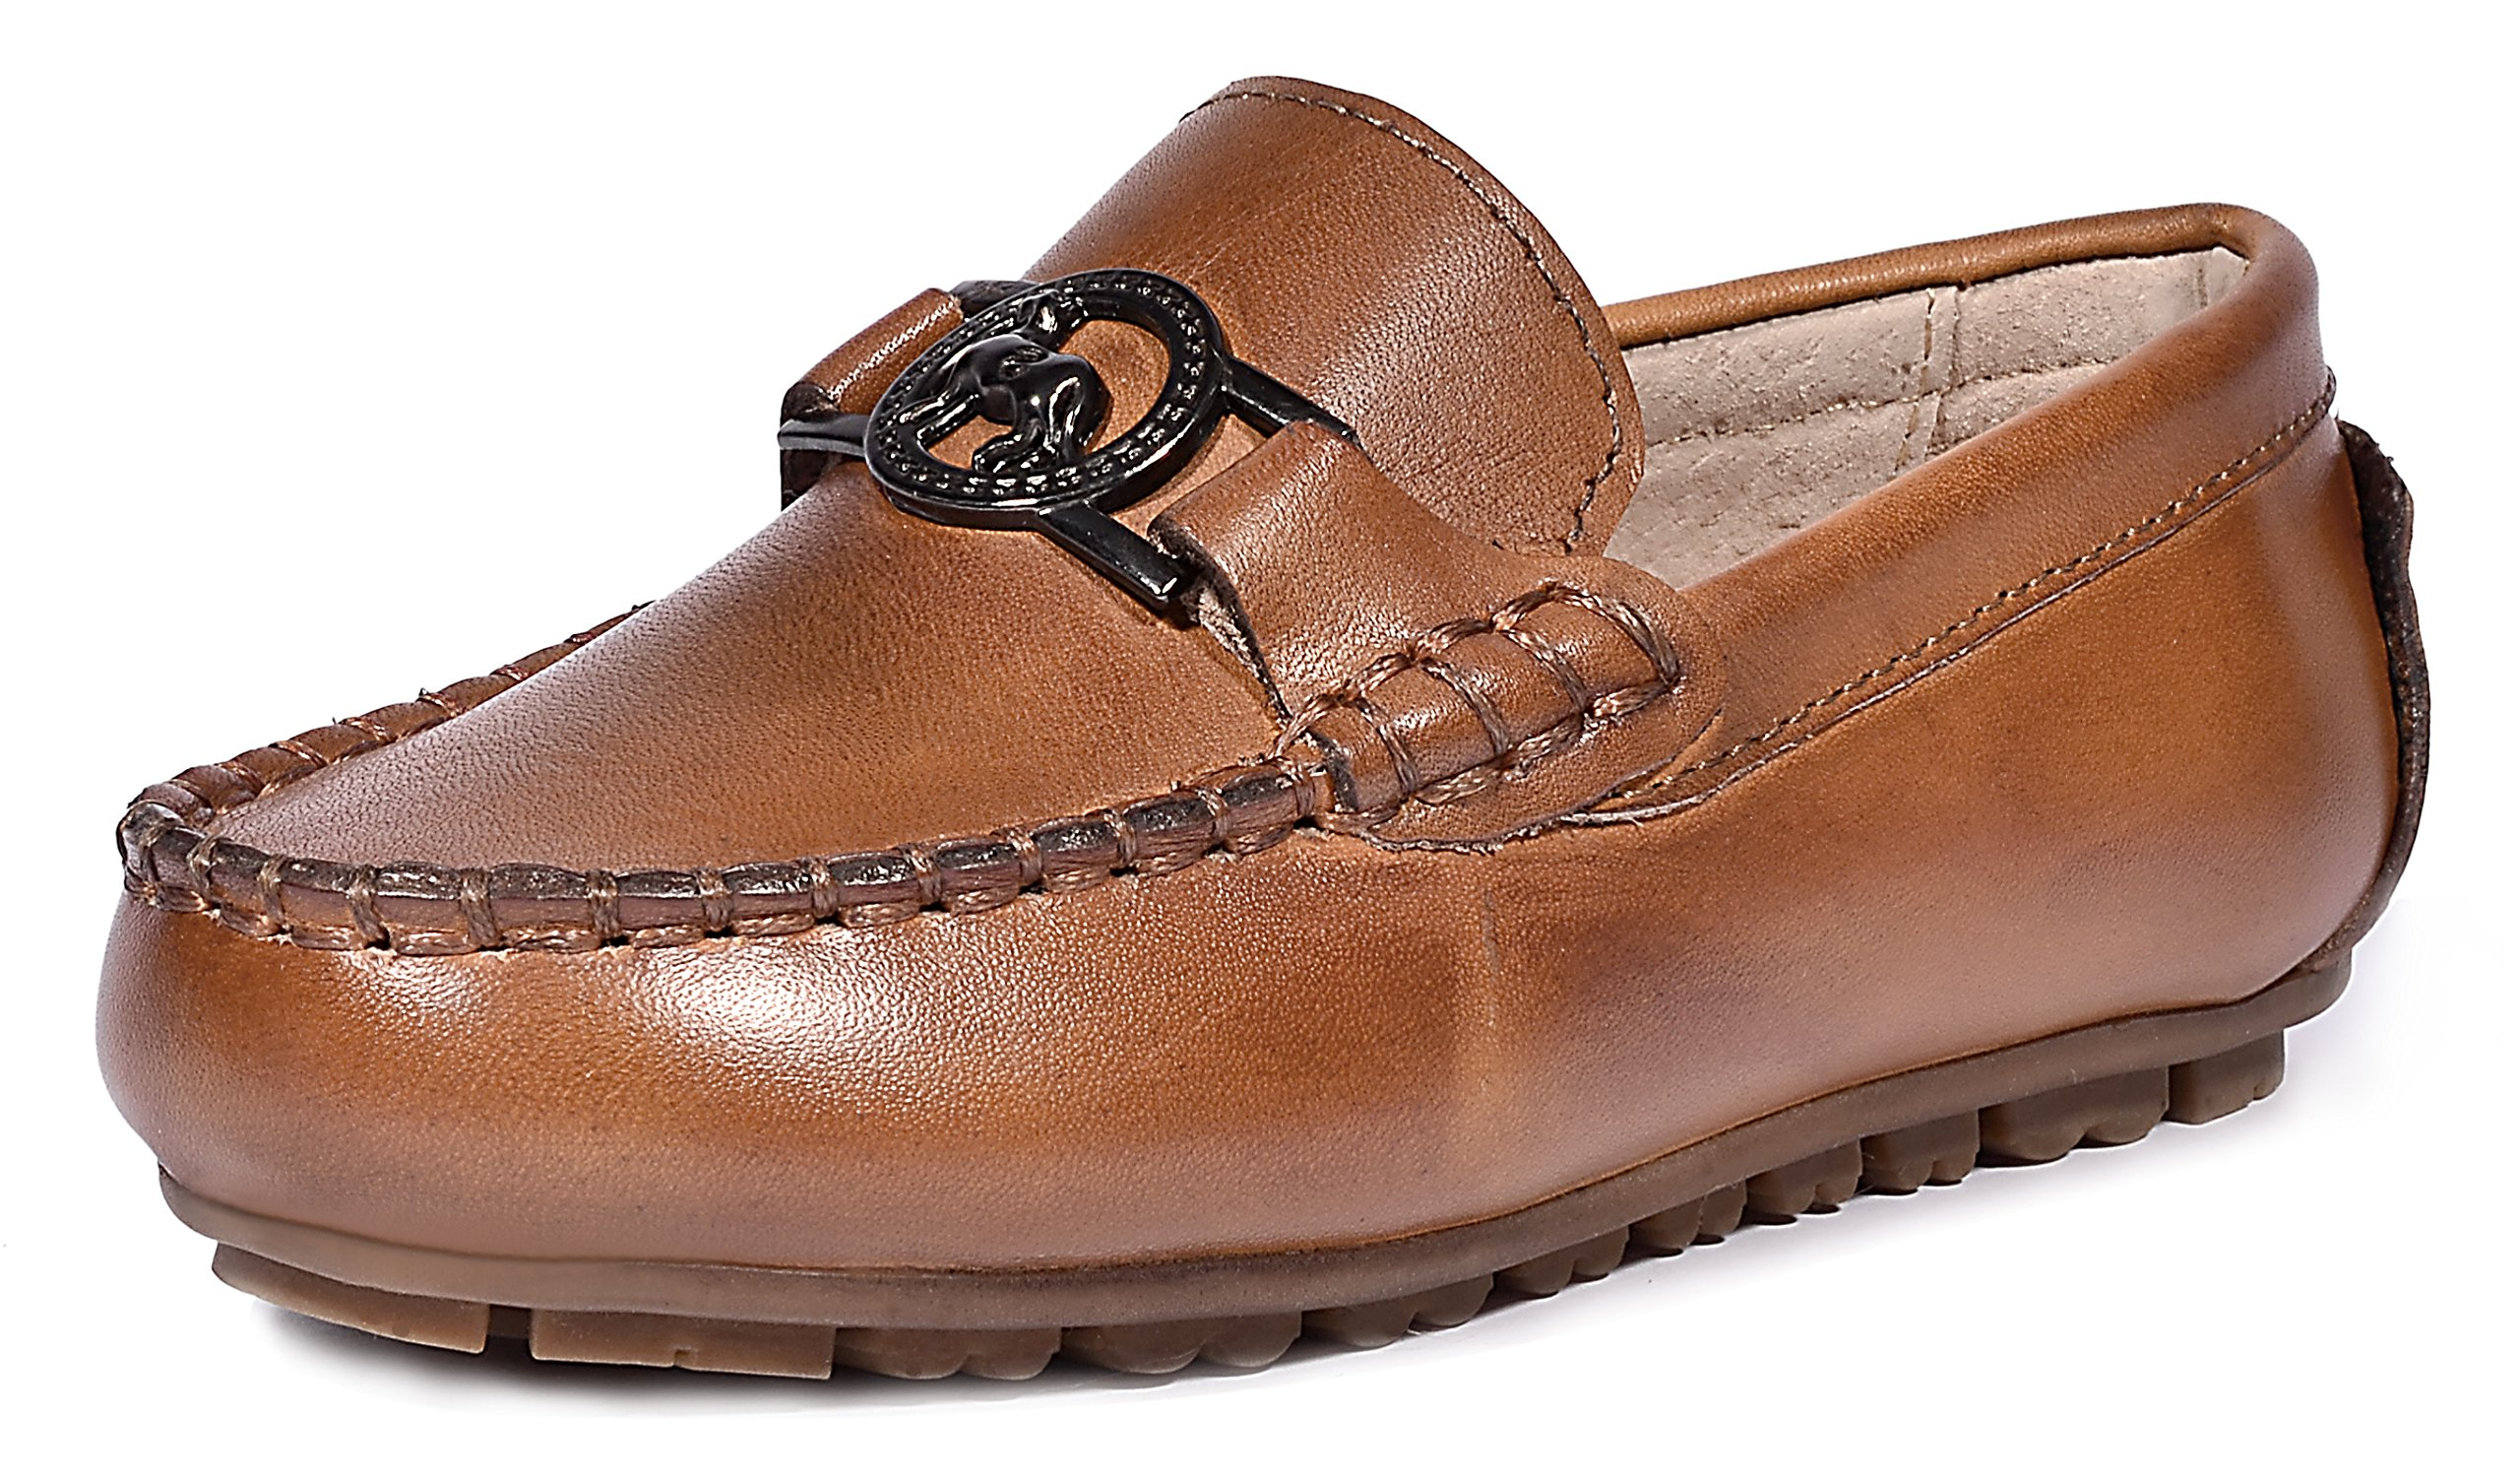 LIYZU Boy's Leather Distressed Loafers Dress Oxford Shoes (Toddler/Little Kid/Big Kid) US Size 5.5 Brown by LIYZU